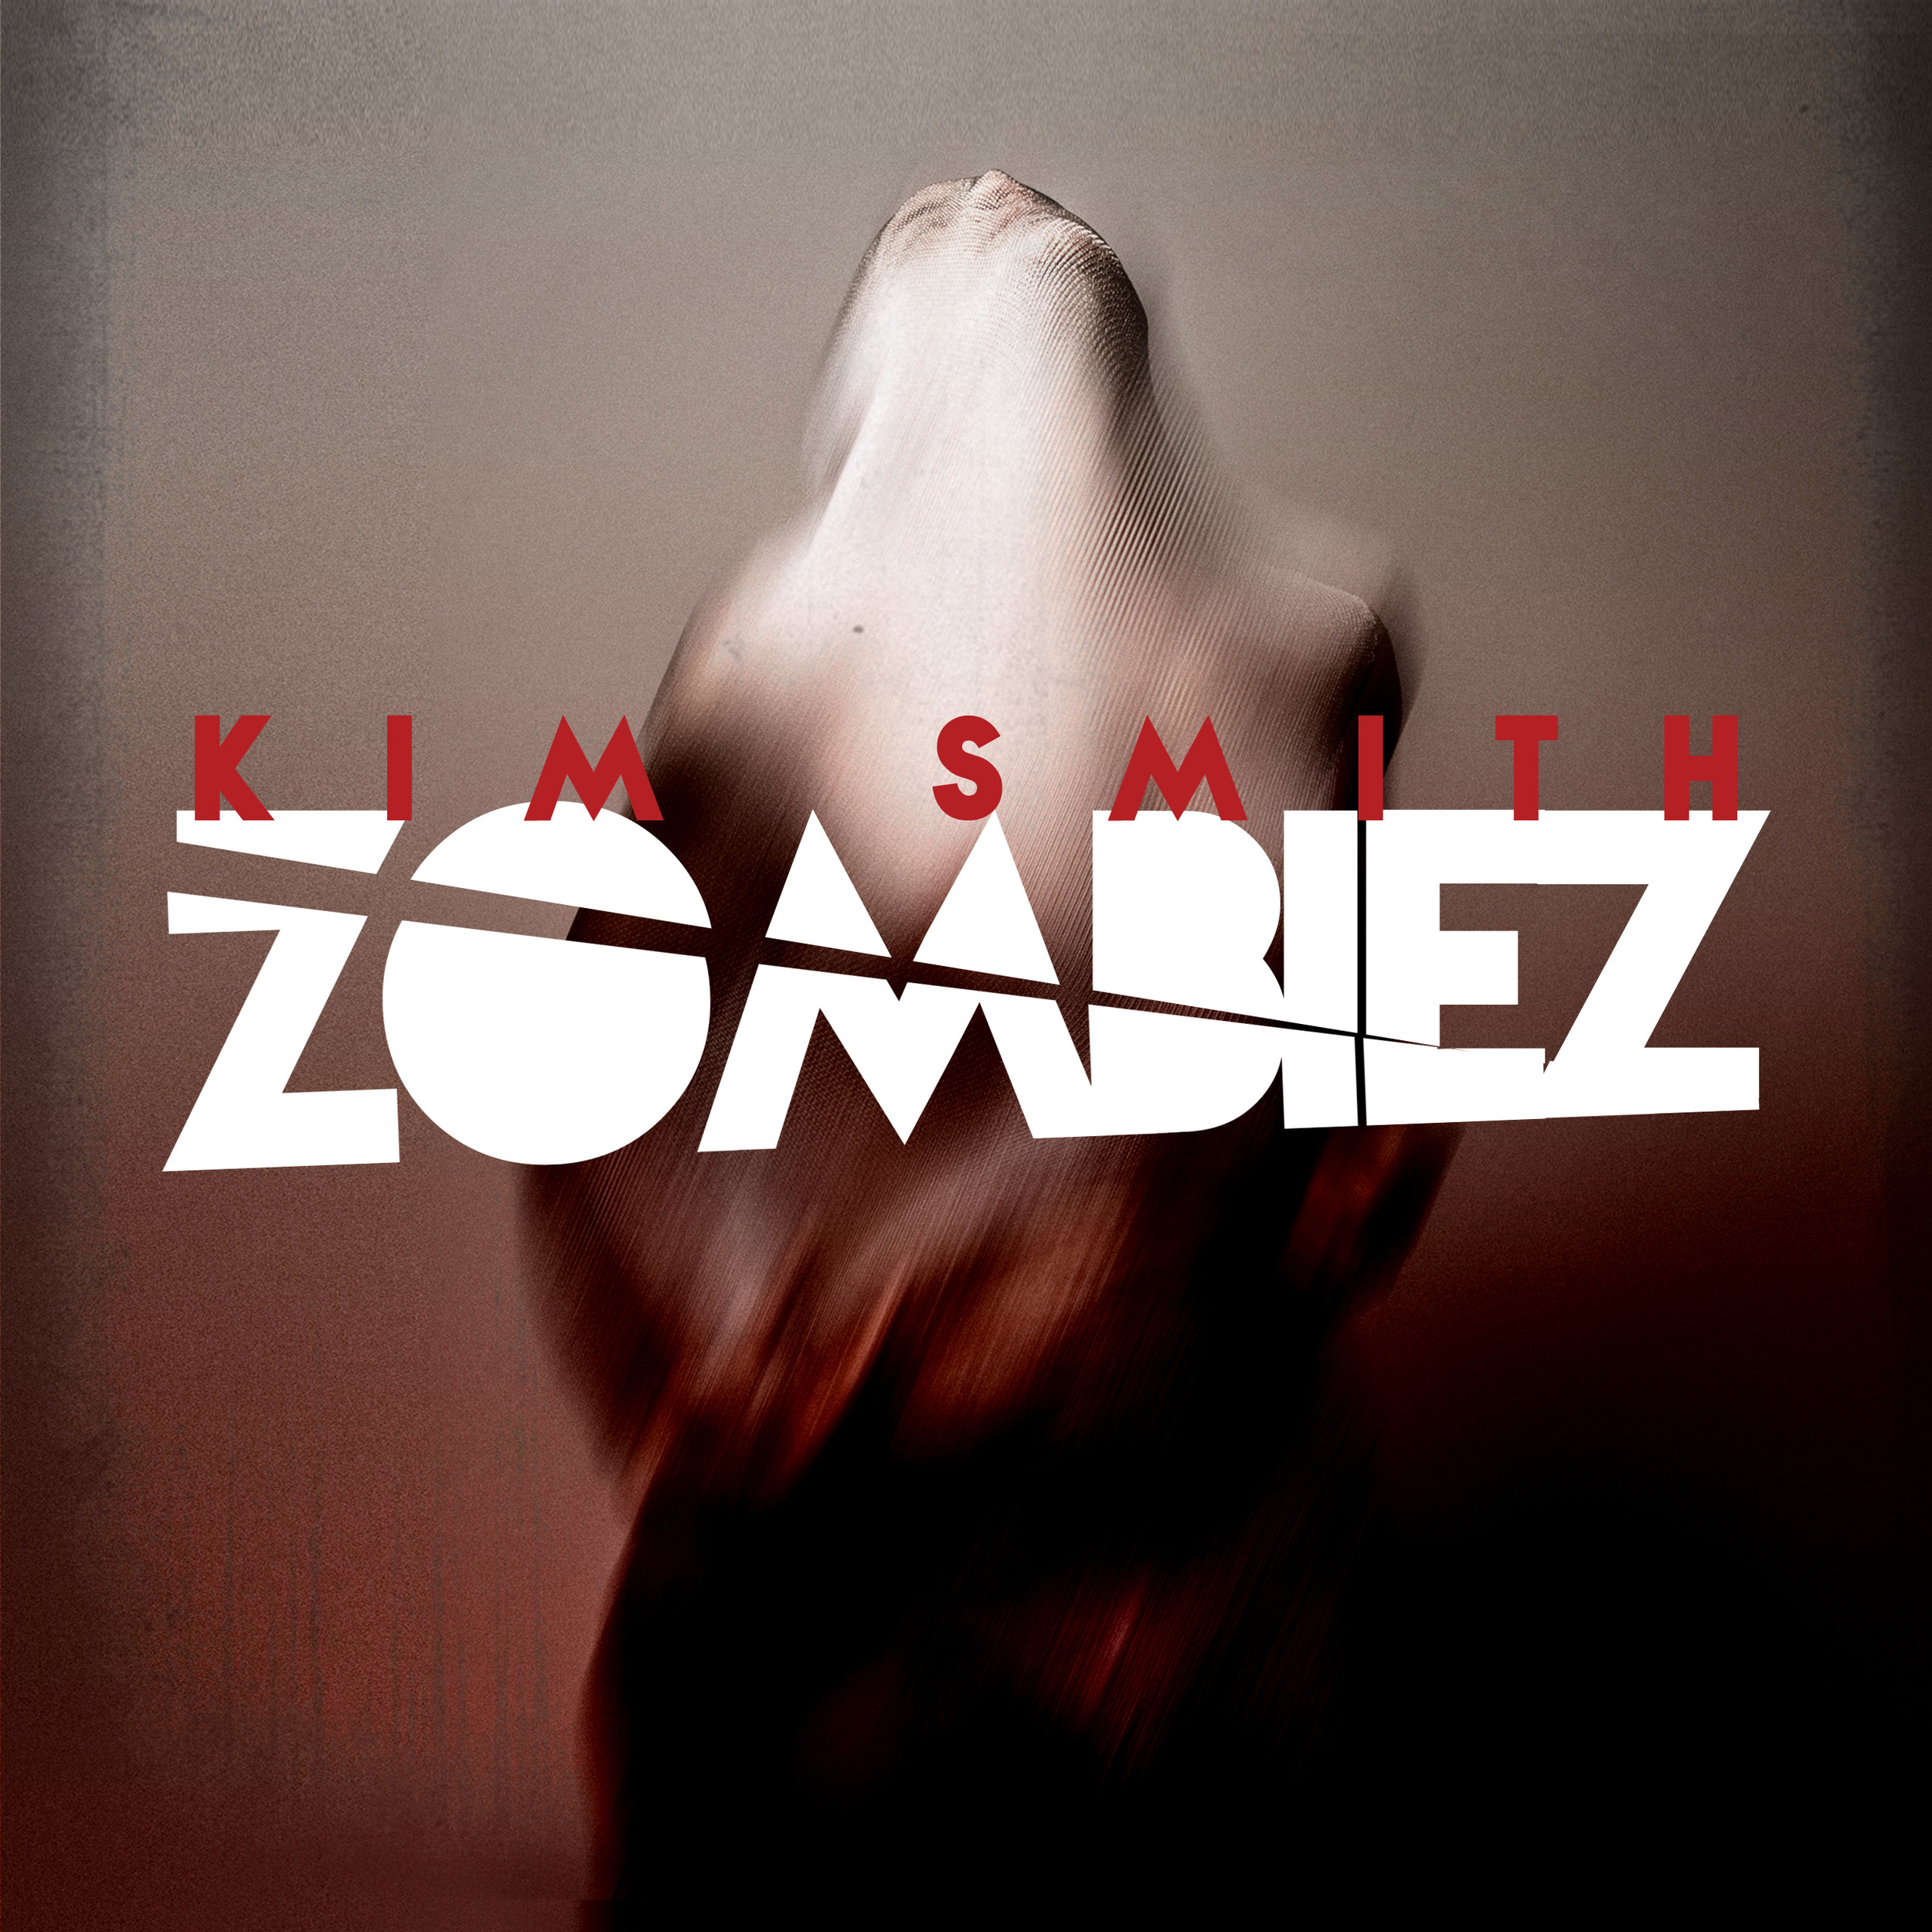 Kim-Smith: Zombiez Remix EP Cover Art. Image by RAM Imagery, design by Liam Curry. 2013